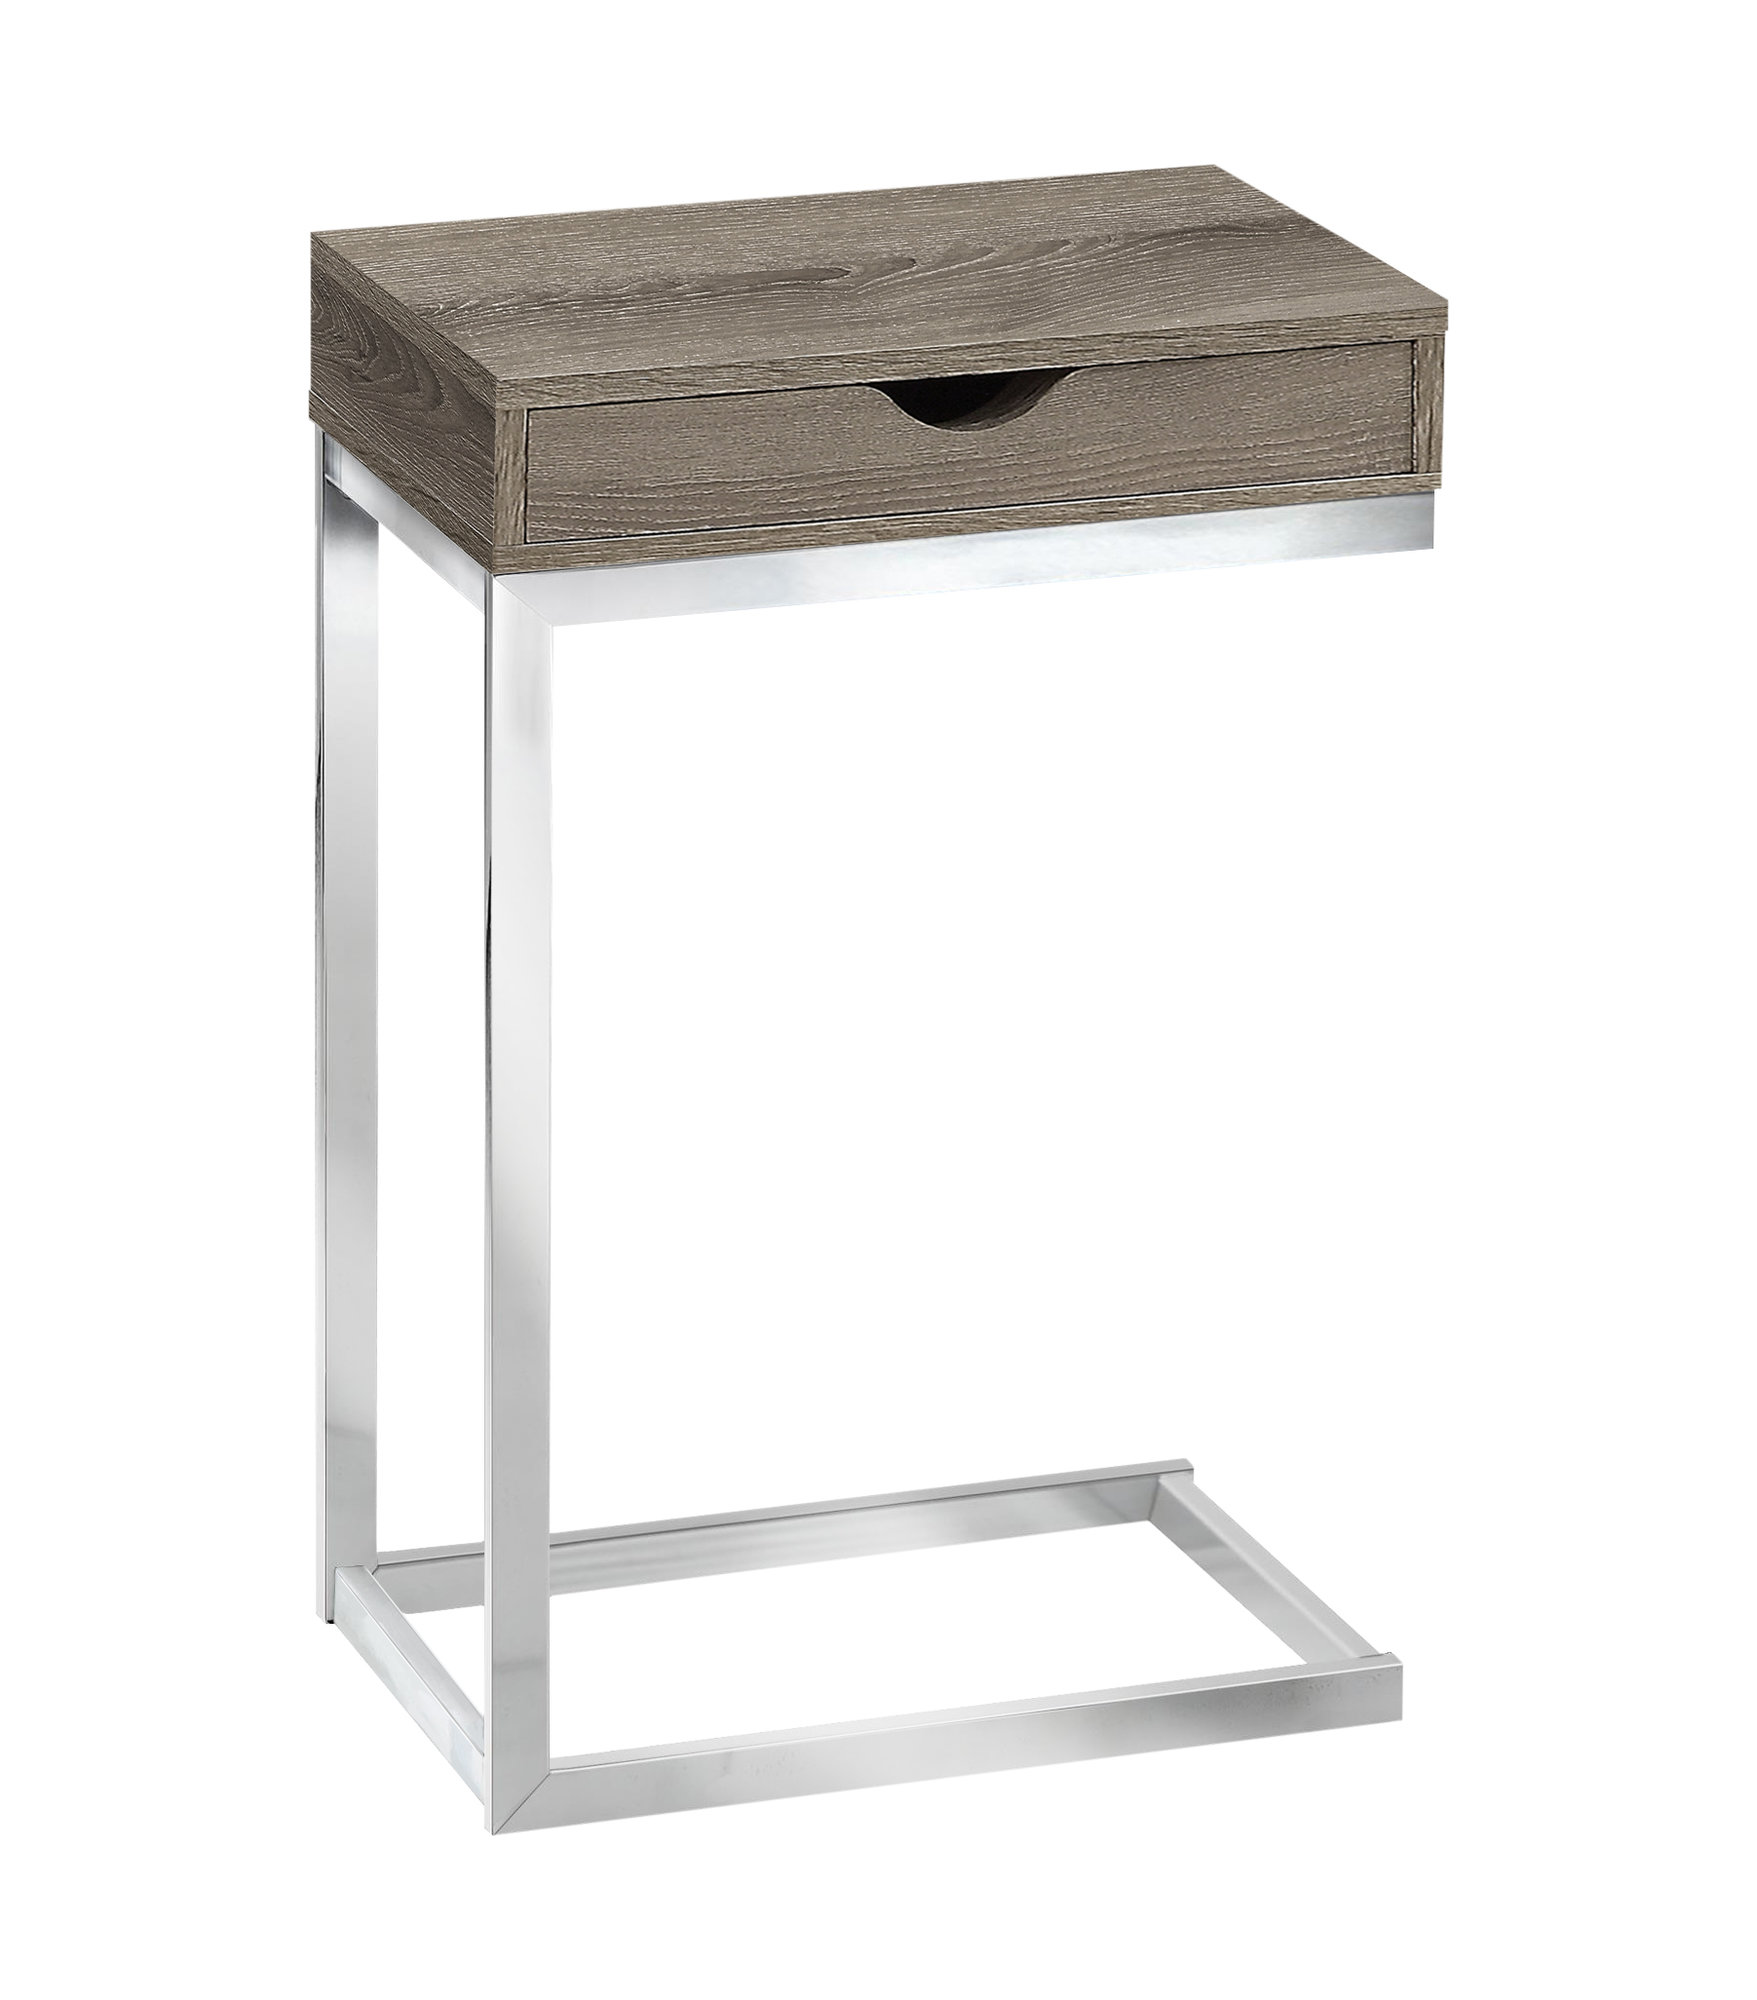 "Monarch 25"" Contemporary Polished Chrome Metal Frame C-Shaped Side Accent Table with Storage Drawer - Dark Taupe Finish from Monarch"